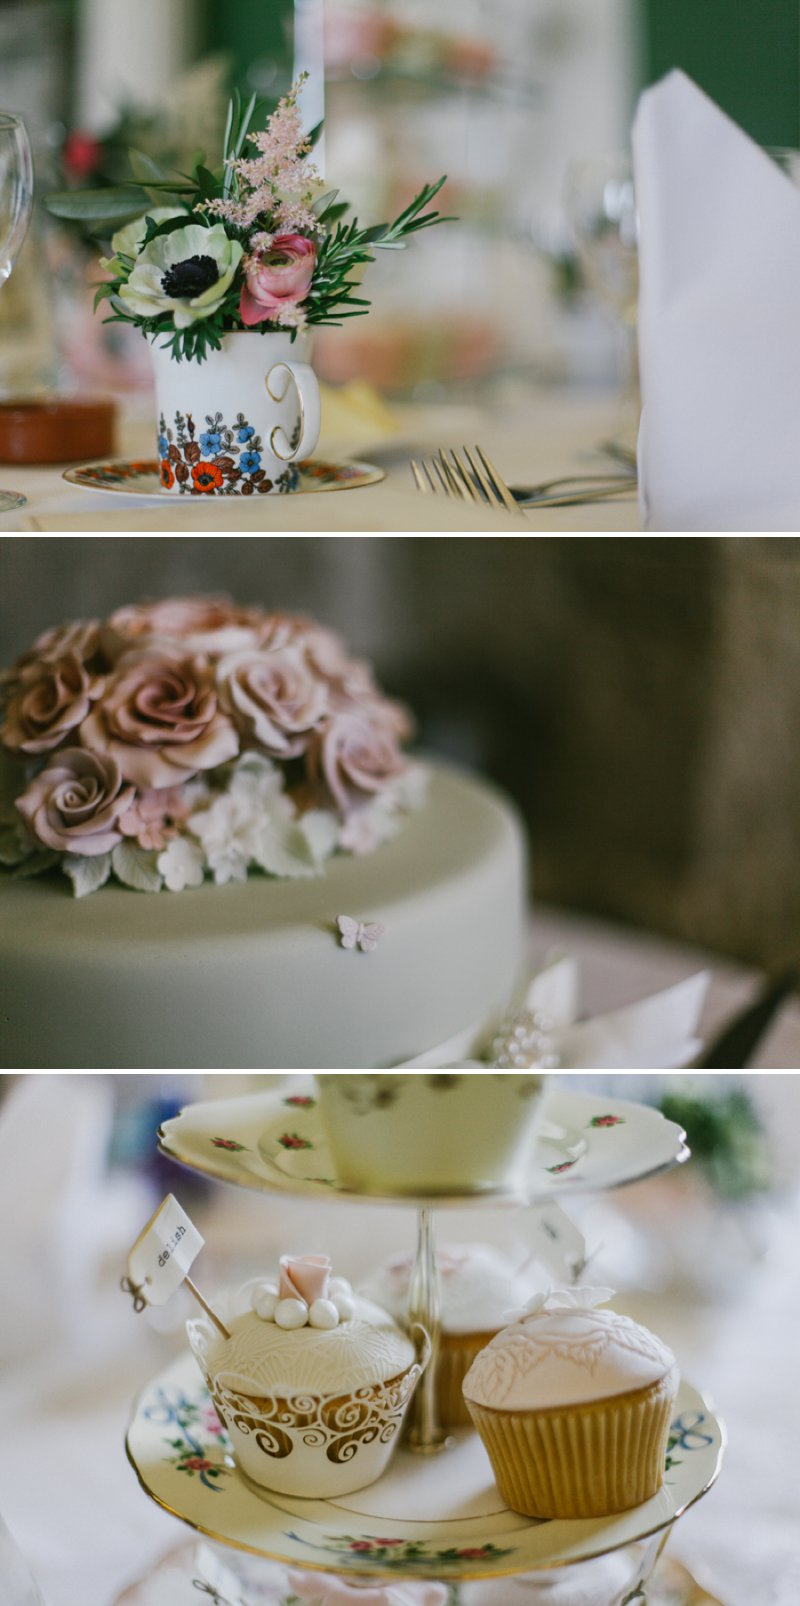 Vintage Inspired Wedding At Hazlewood Castle In Yorkshire With Bride In Foxglove By Jenny Packham And Bridesmaids In Pink Dresses From Coast With A Firework Display 8